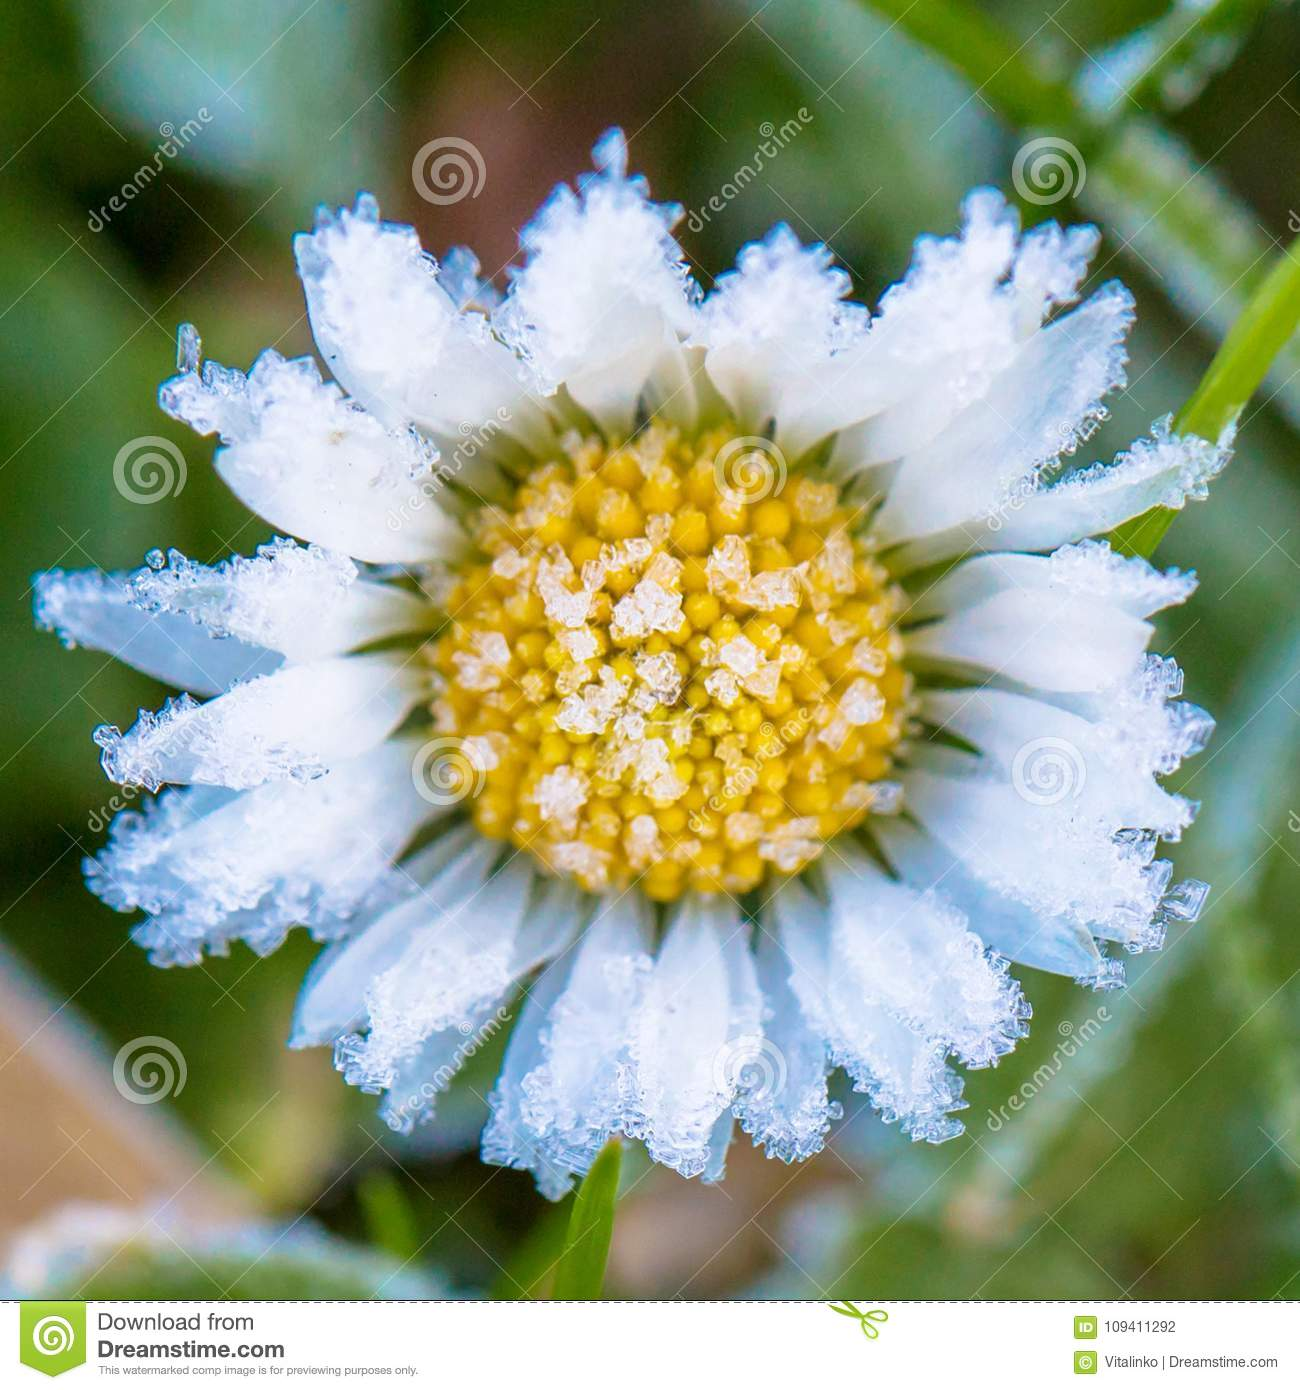 Frozen Flower Of A Daisy Close Up Stock Photo Image Of Beauty